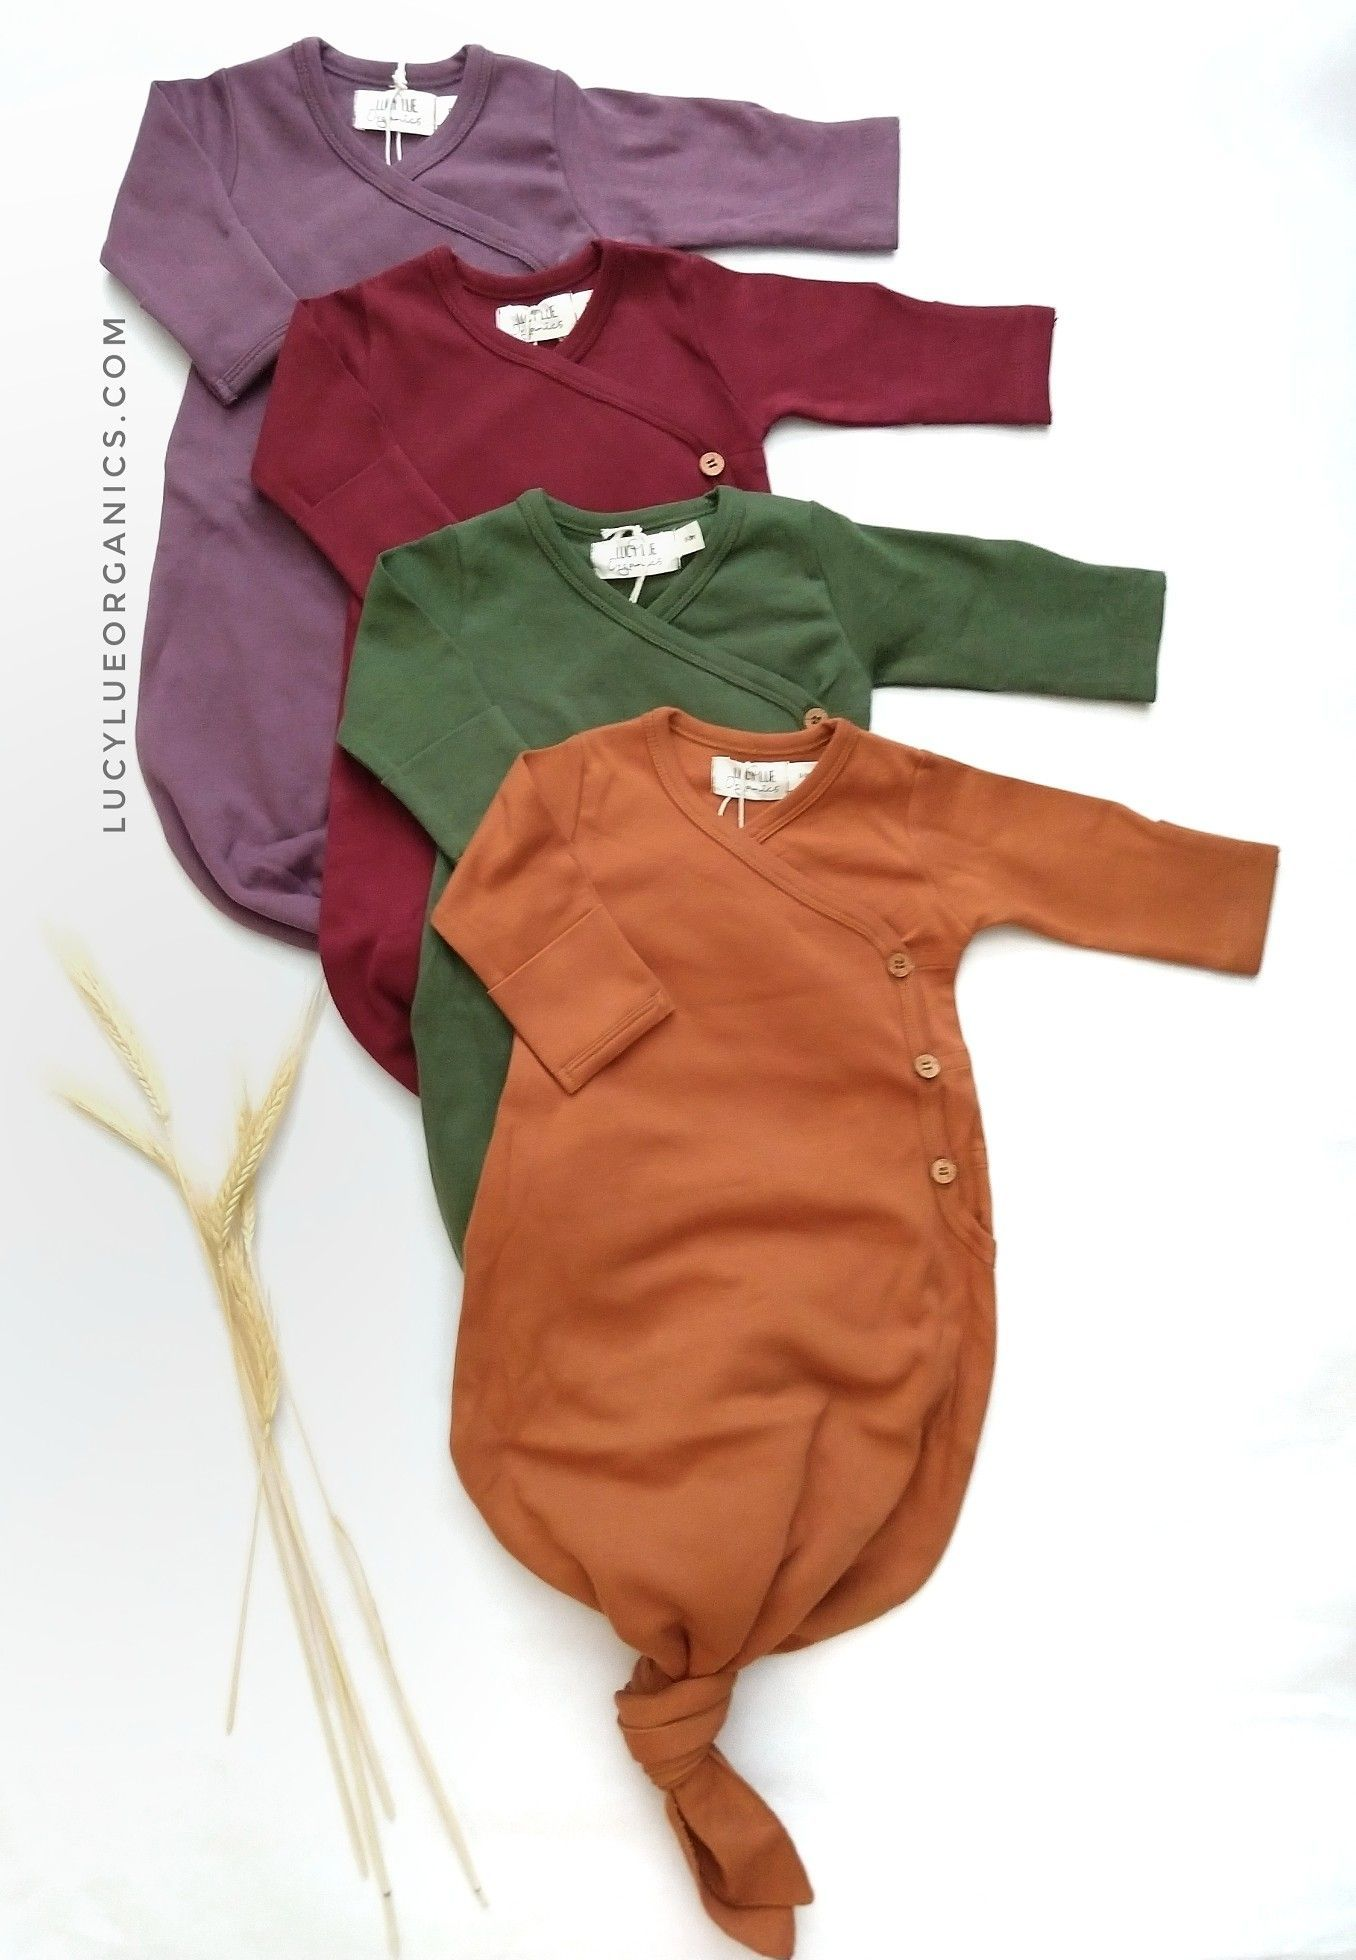 Knotted Baby Gowns The Cutest And Most Stylish Knotted Baby Gowns By Lucy Lue Organics Made In Organic Cotto Baby Girl Clothes Baby Gown Natural Baby Clothes